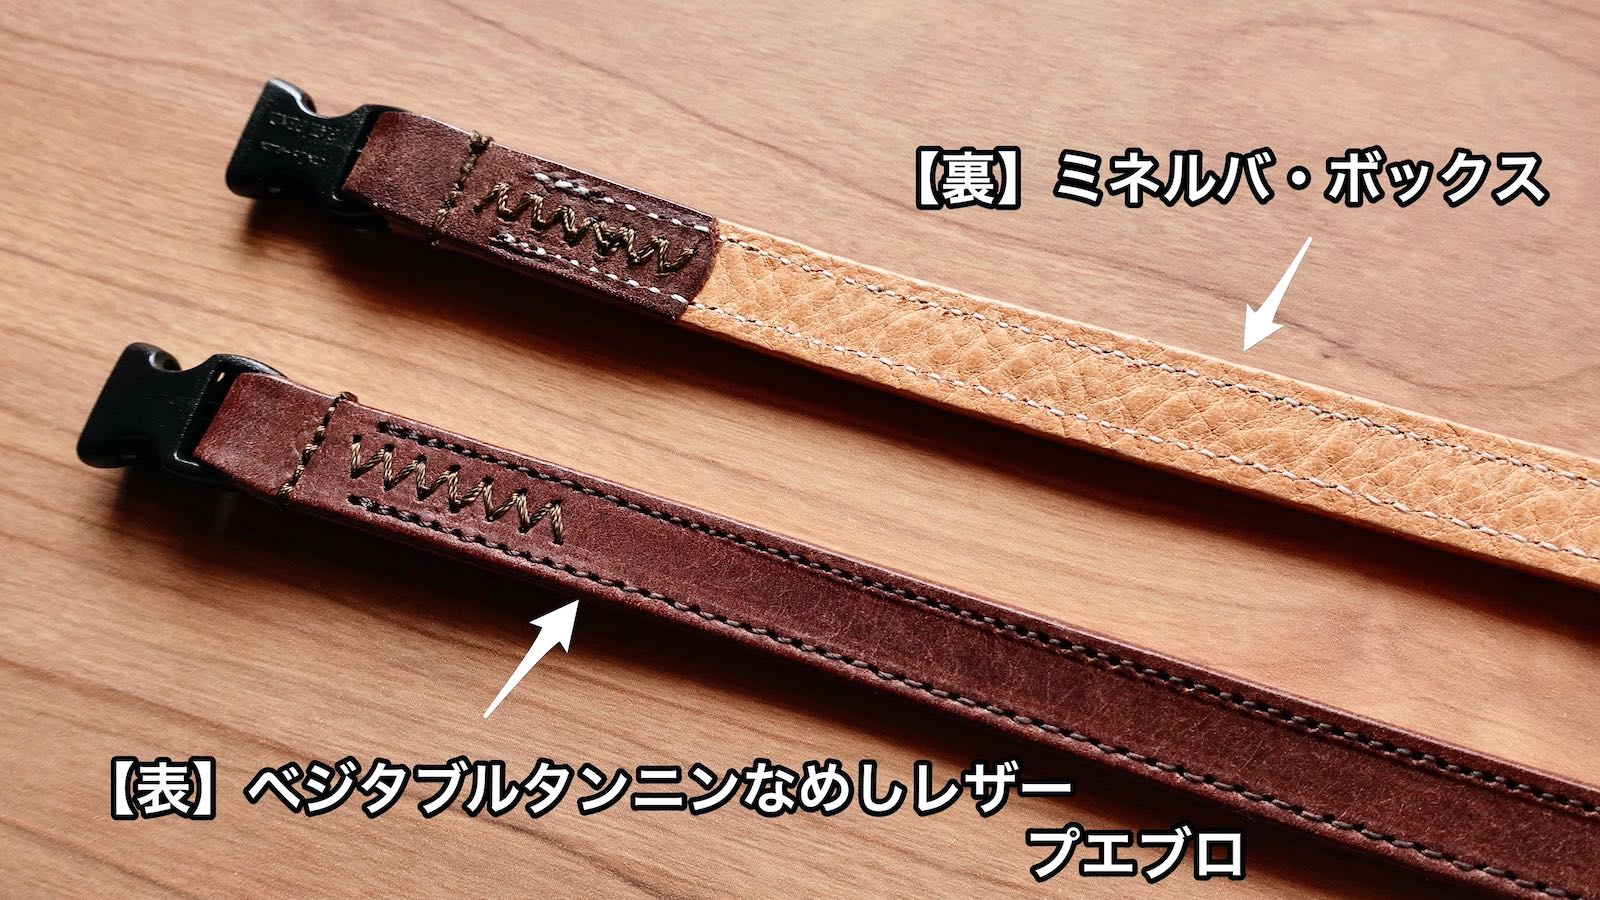 0225 Camera strap ULYSSES Review 13